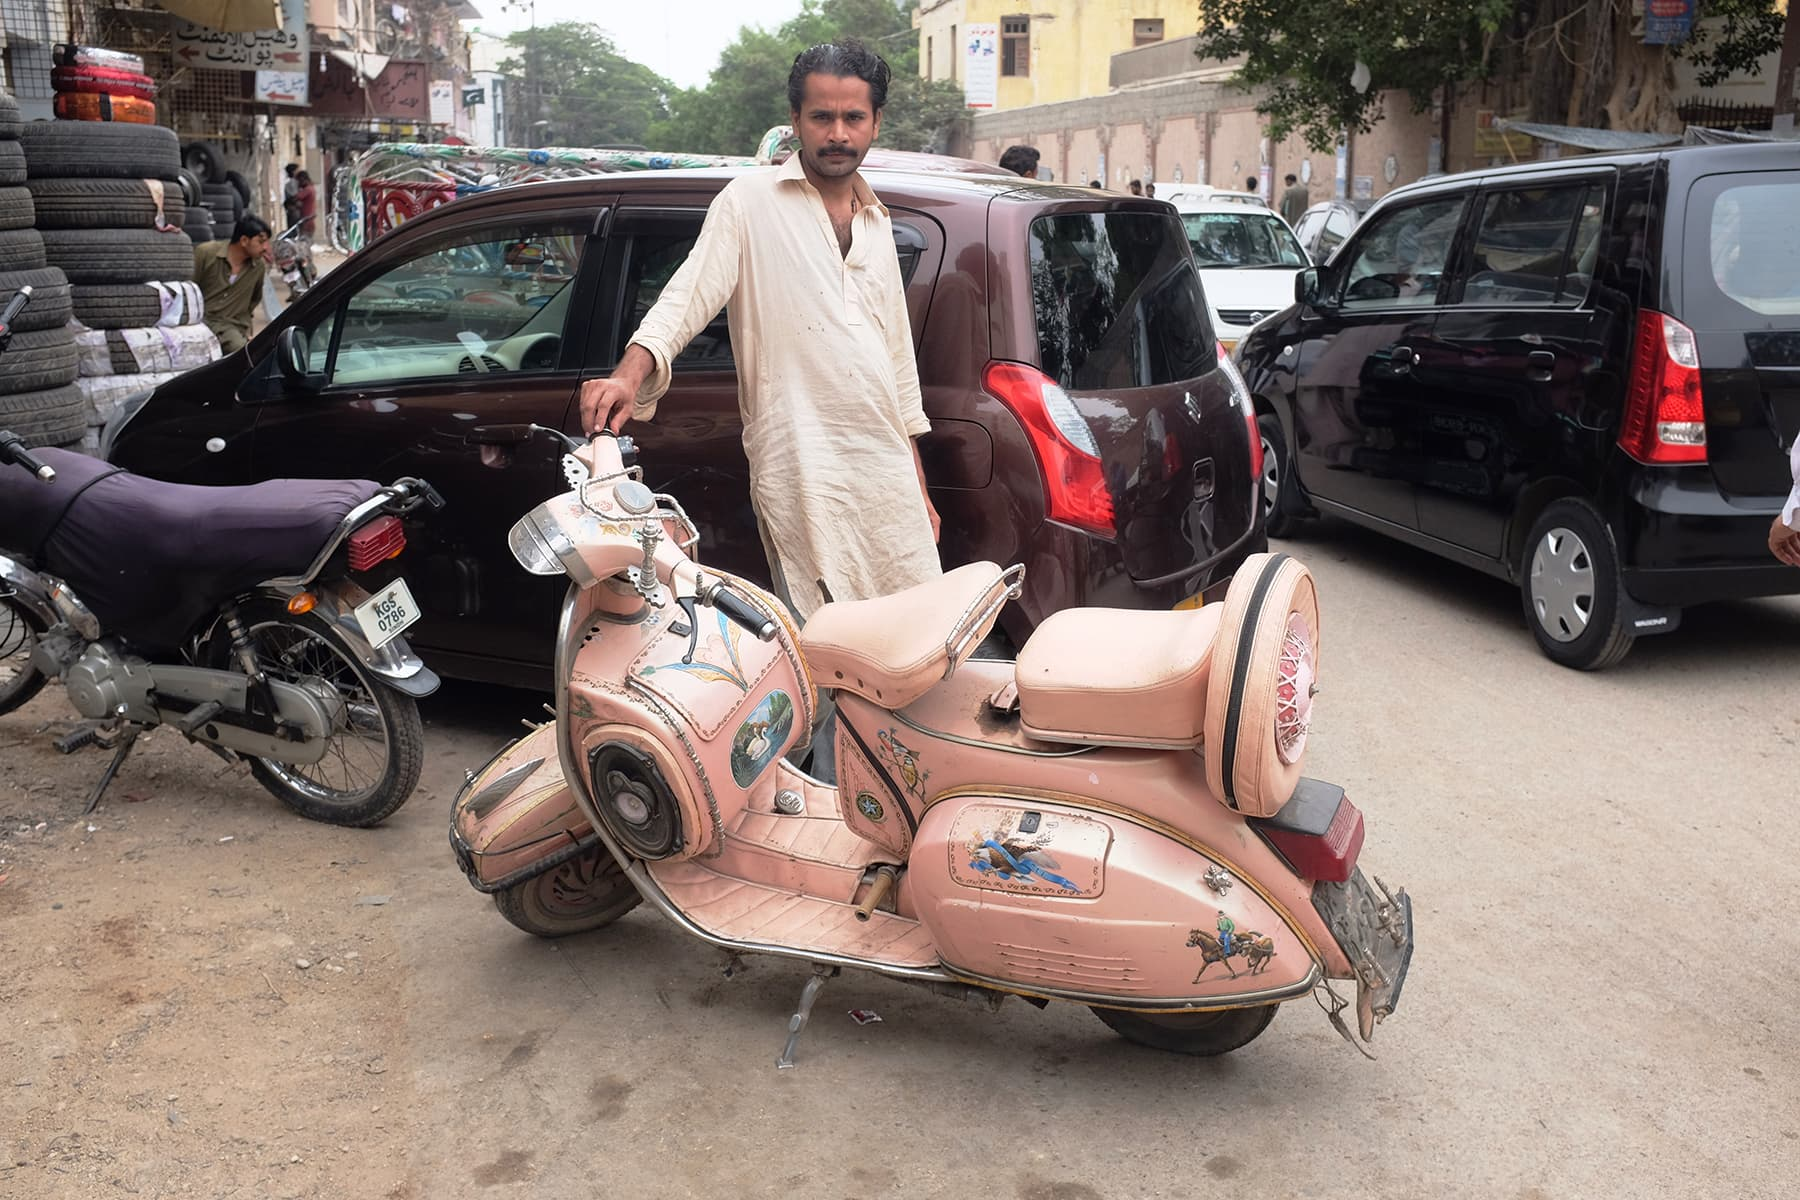 Shehzad poses with his pink '83 model Vespa.